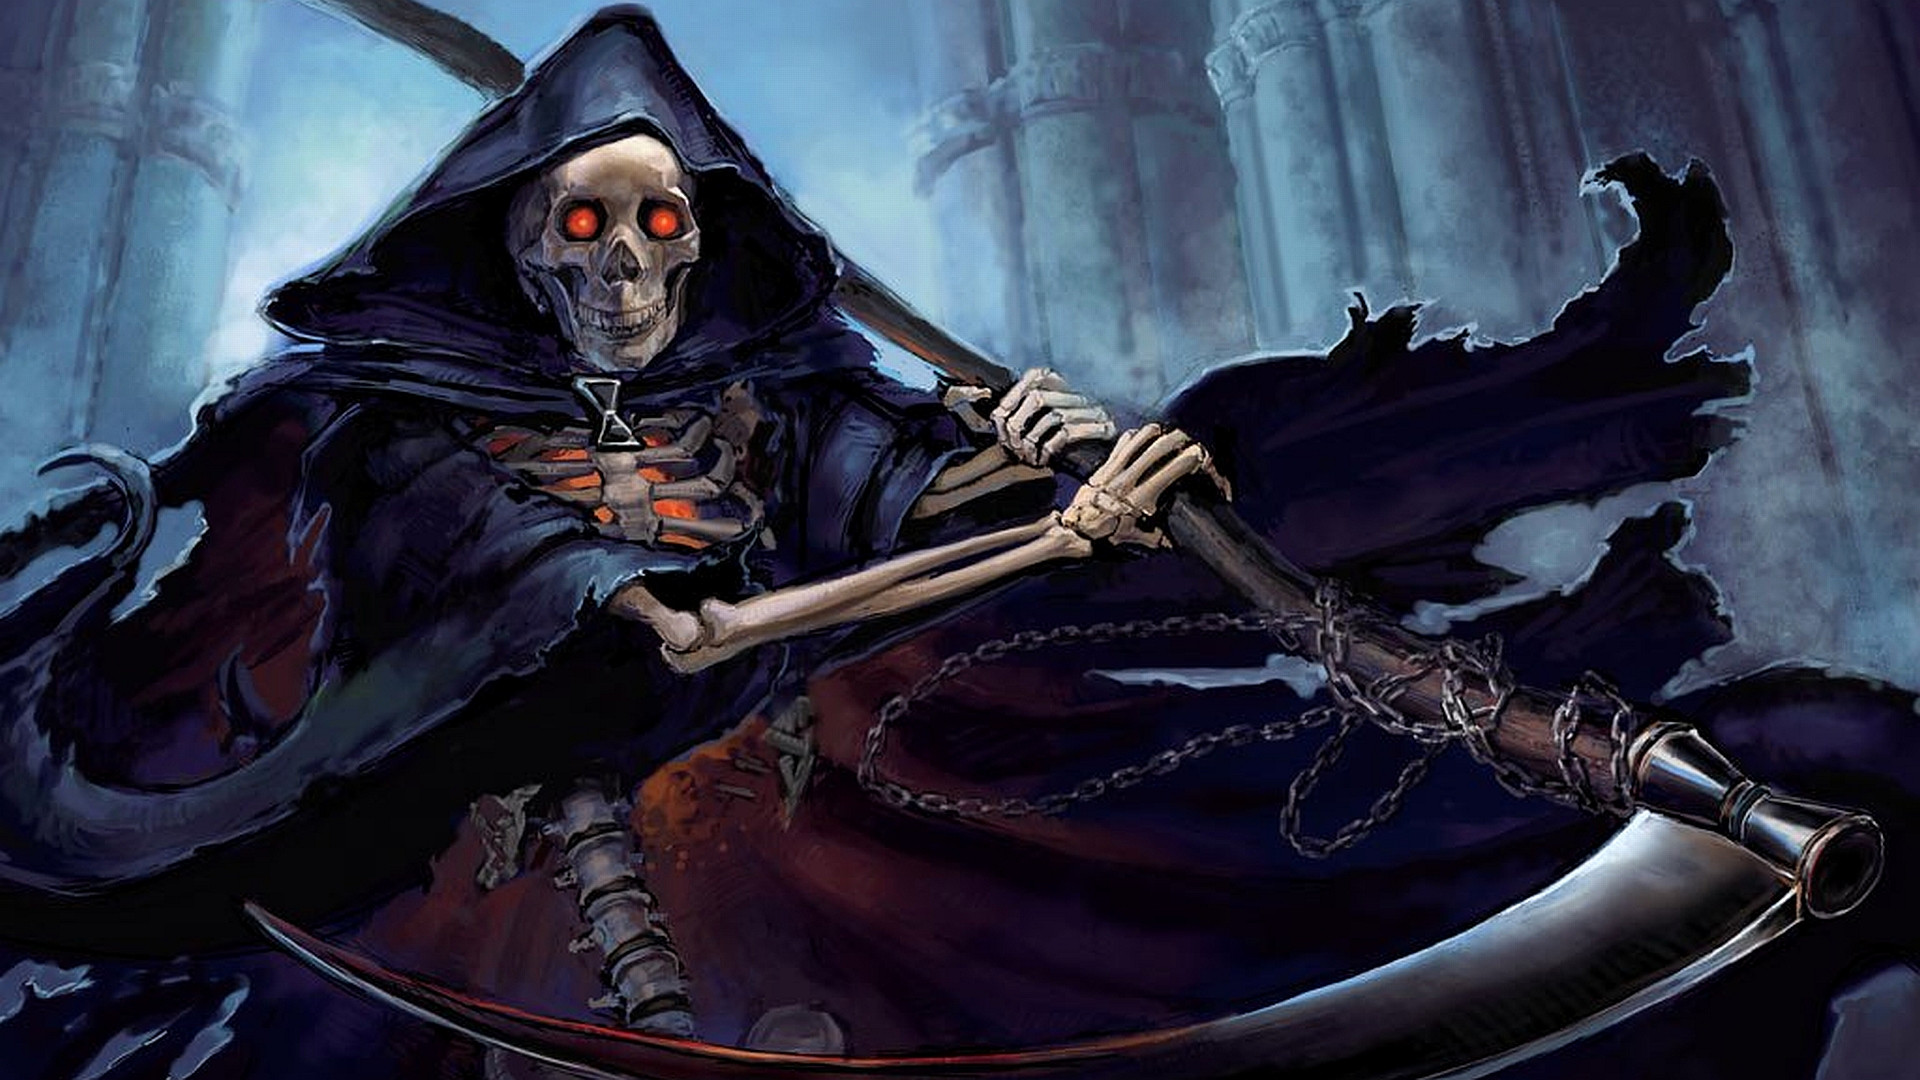 Res: 1920x1080, Grim Reaper Wallpaper Awesome Grim Reaper Full Hd Wallpaper and Background  Image